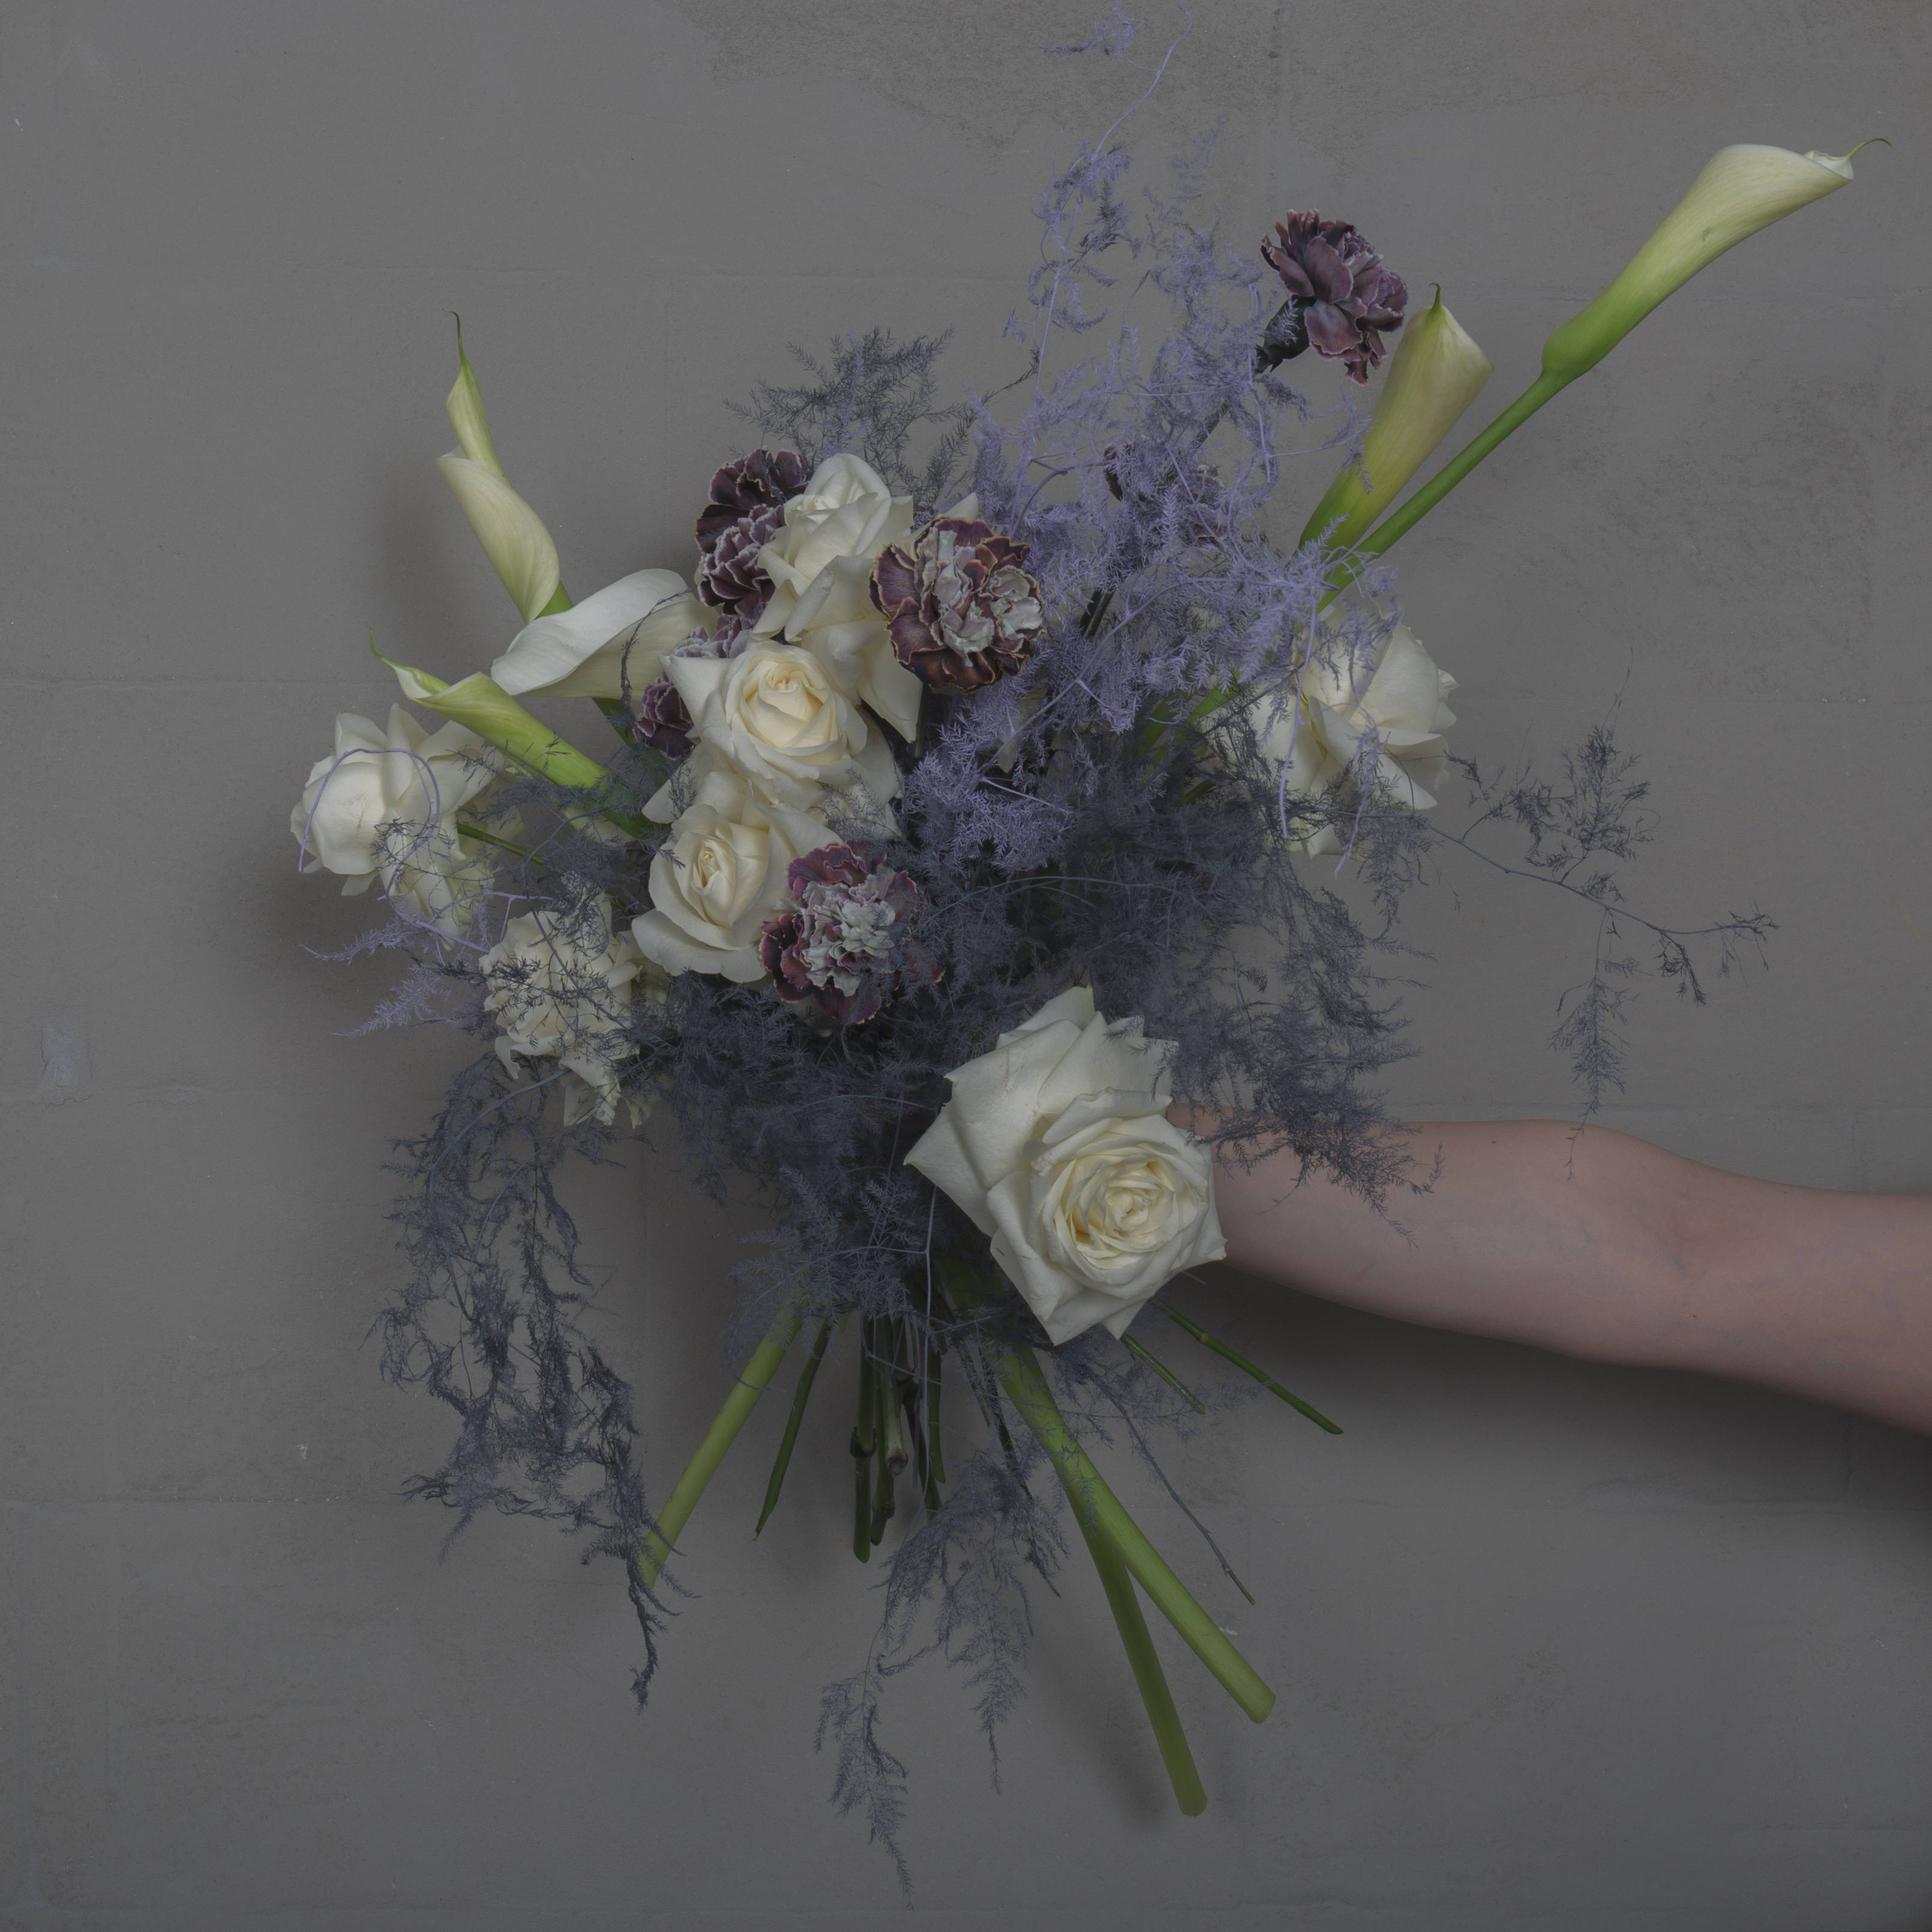 Wedding-bouquet-of-Finecut-weddings-collection-8-2019-lilac-and-white-with-fully-bloomed-roses-callas-lilac-dyed-asparagus-fern-and-striped-carnation-with-amaranth-tails-and-branches-of-almond